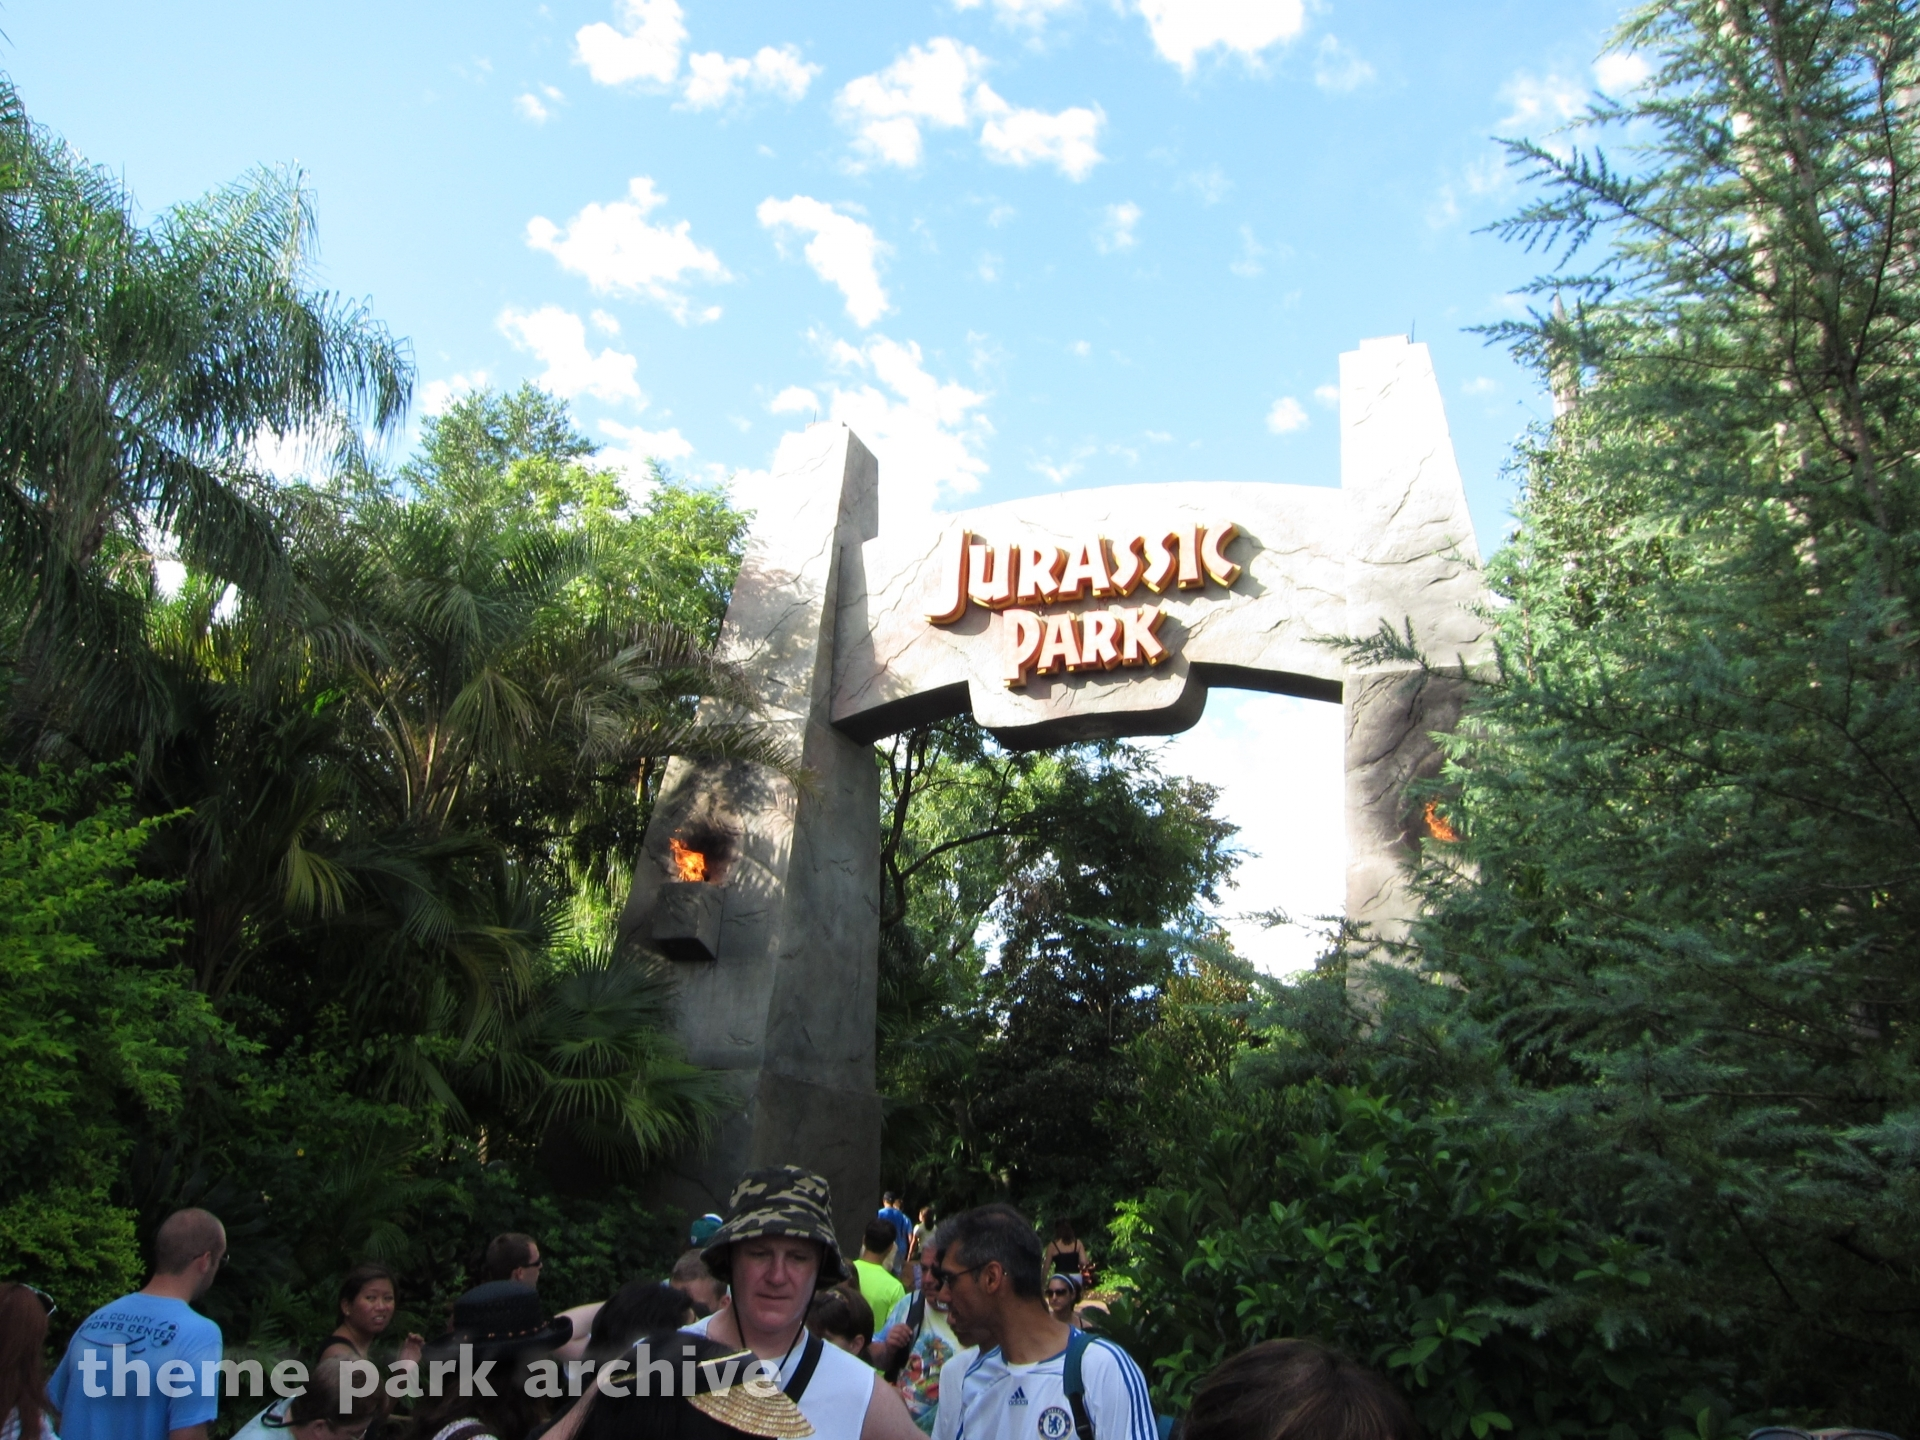 Jurassic Park at Universal Islands of Adventure